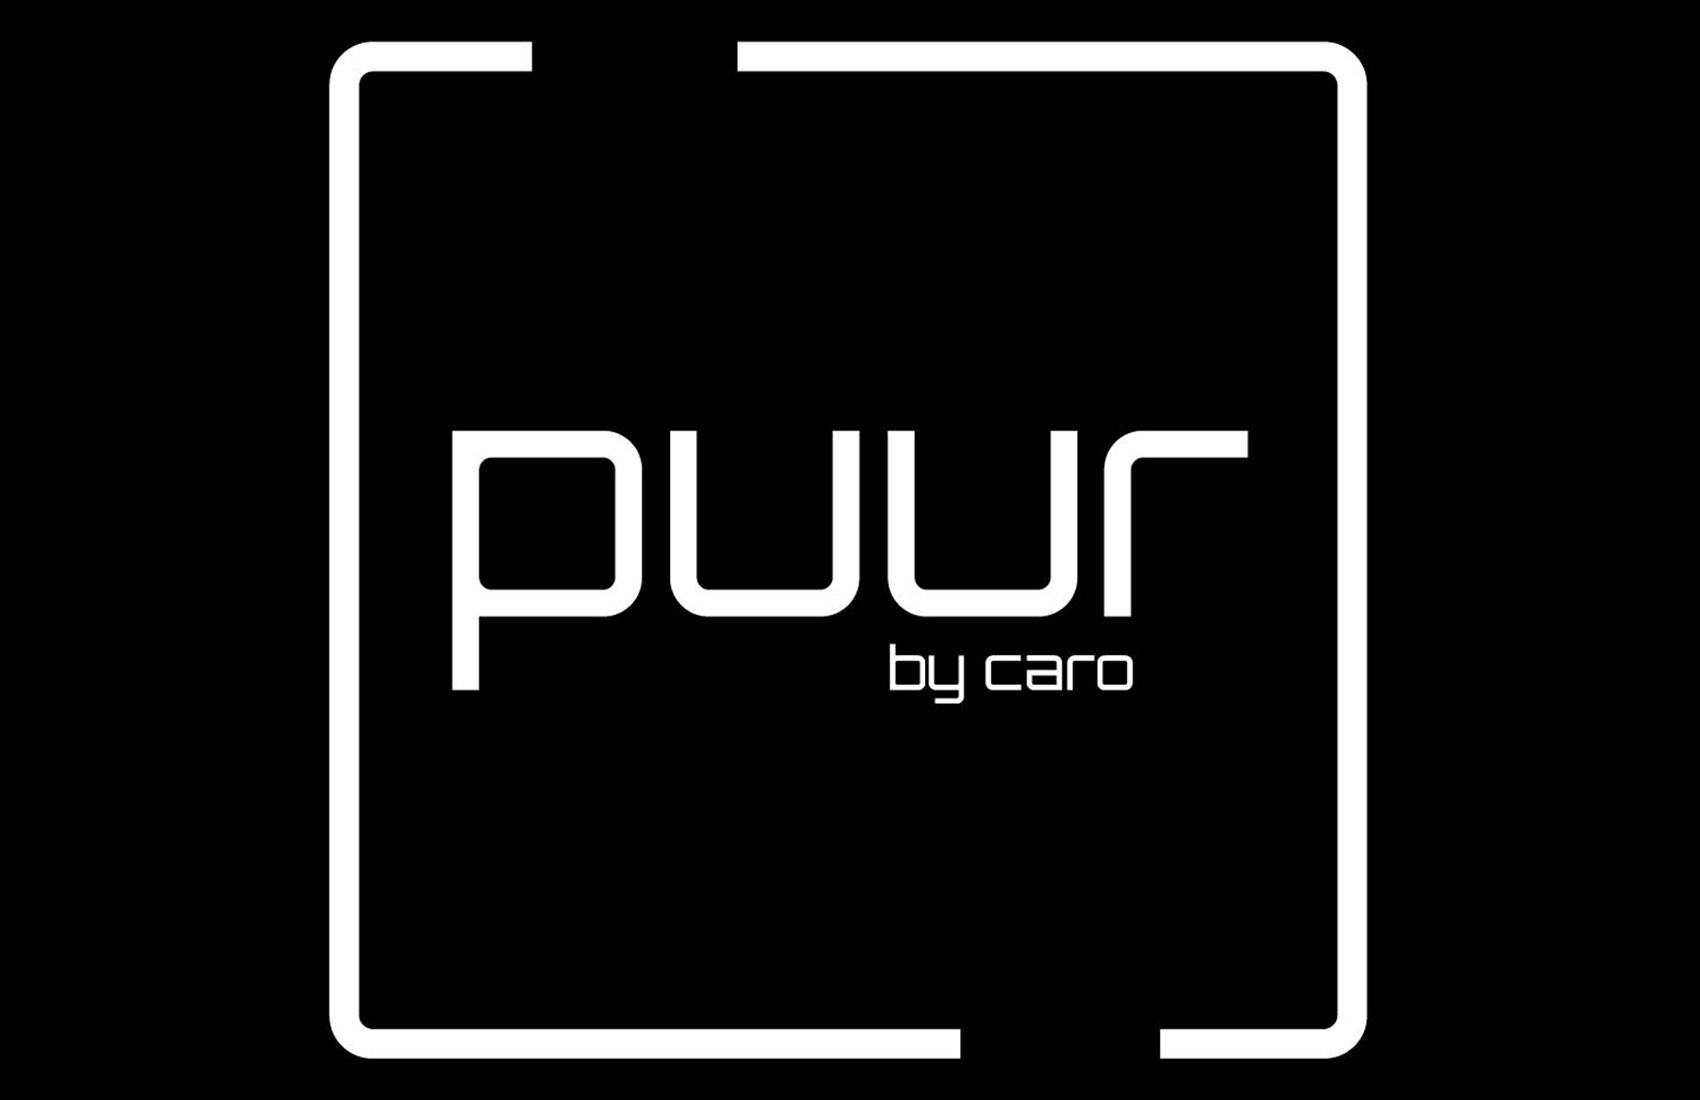 Puur by Caro